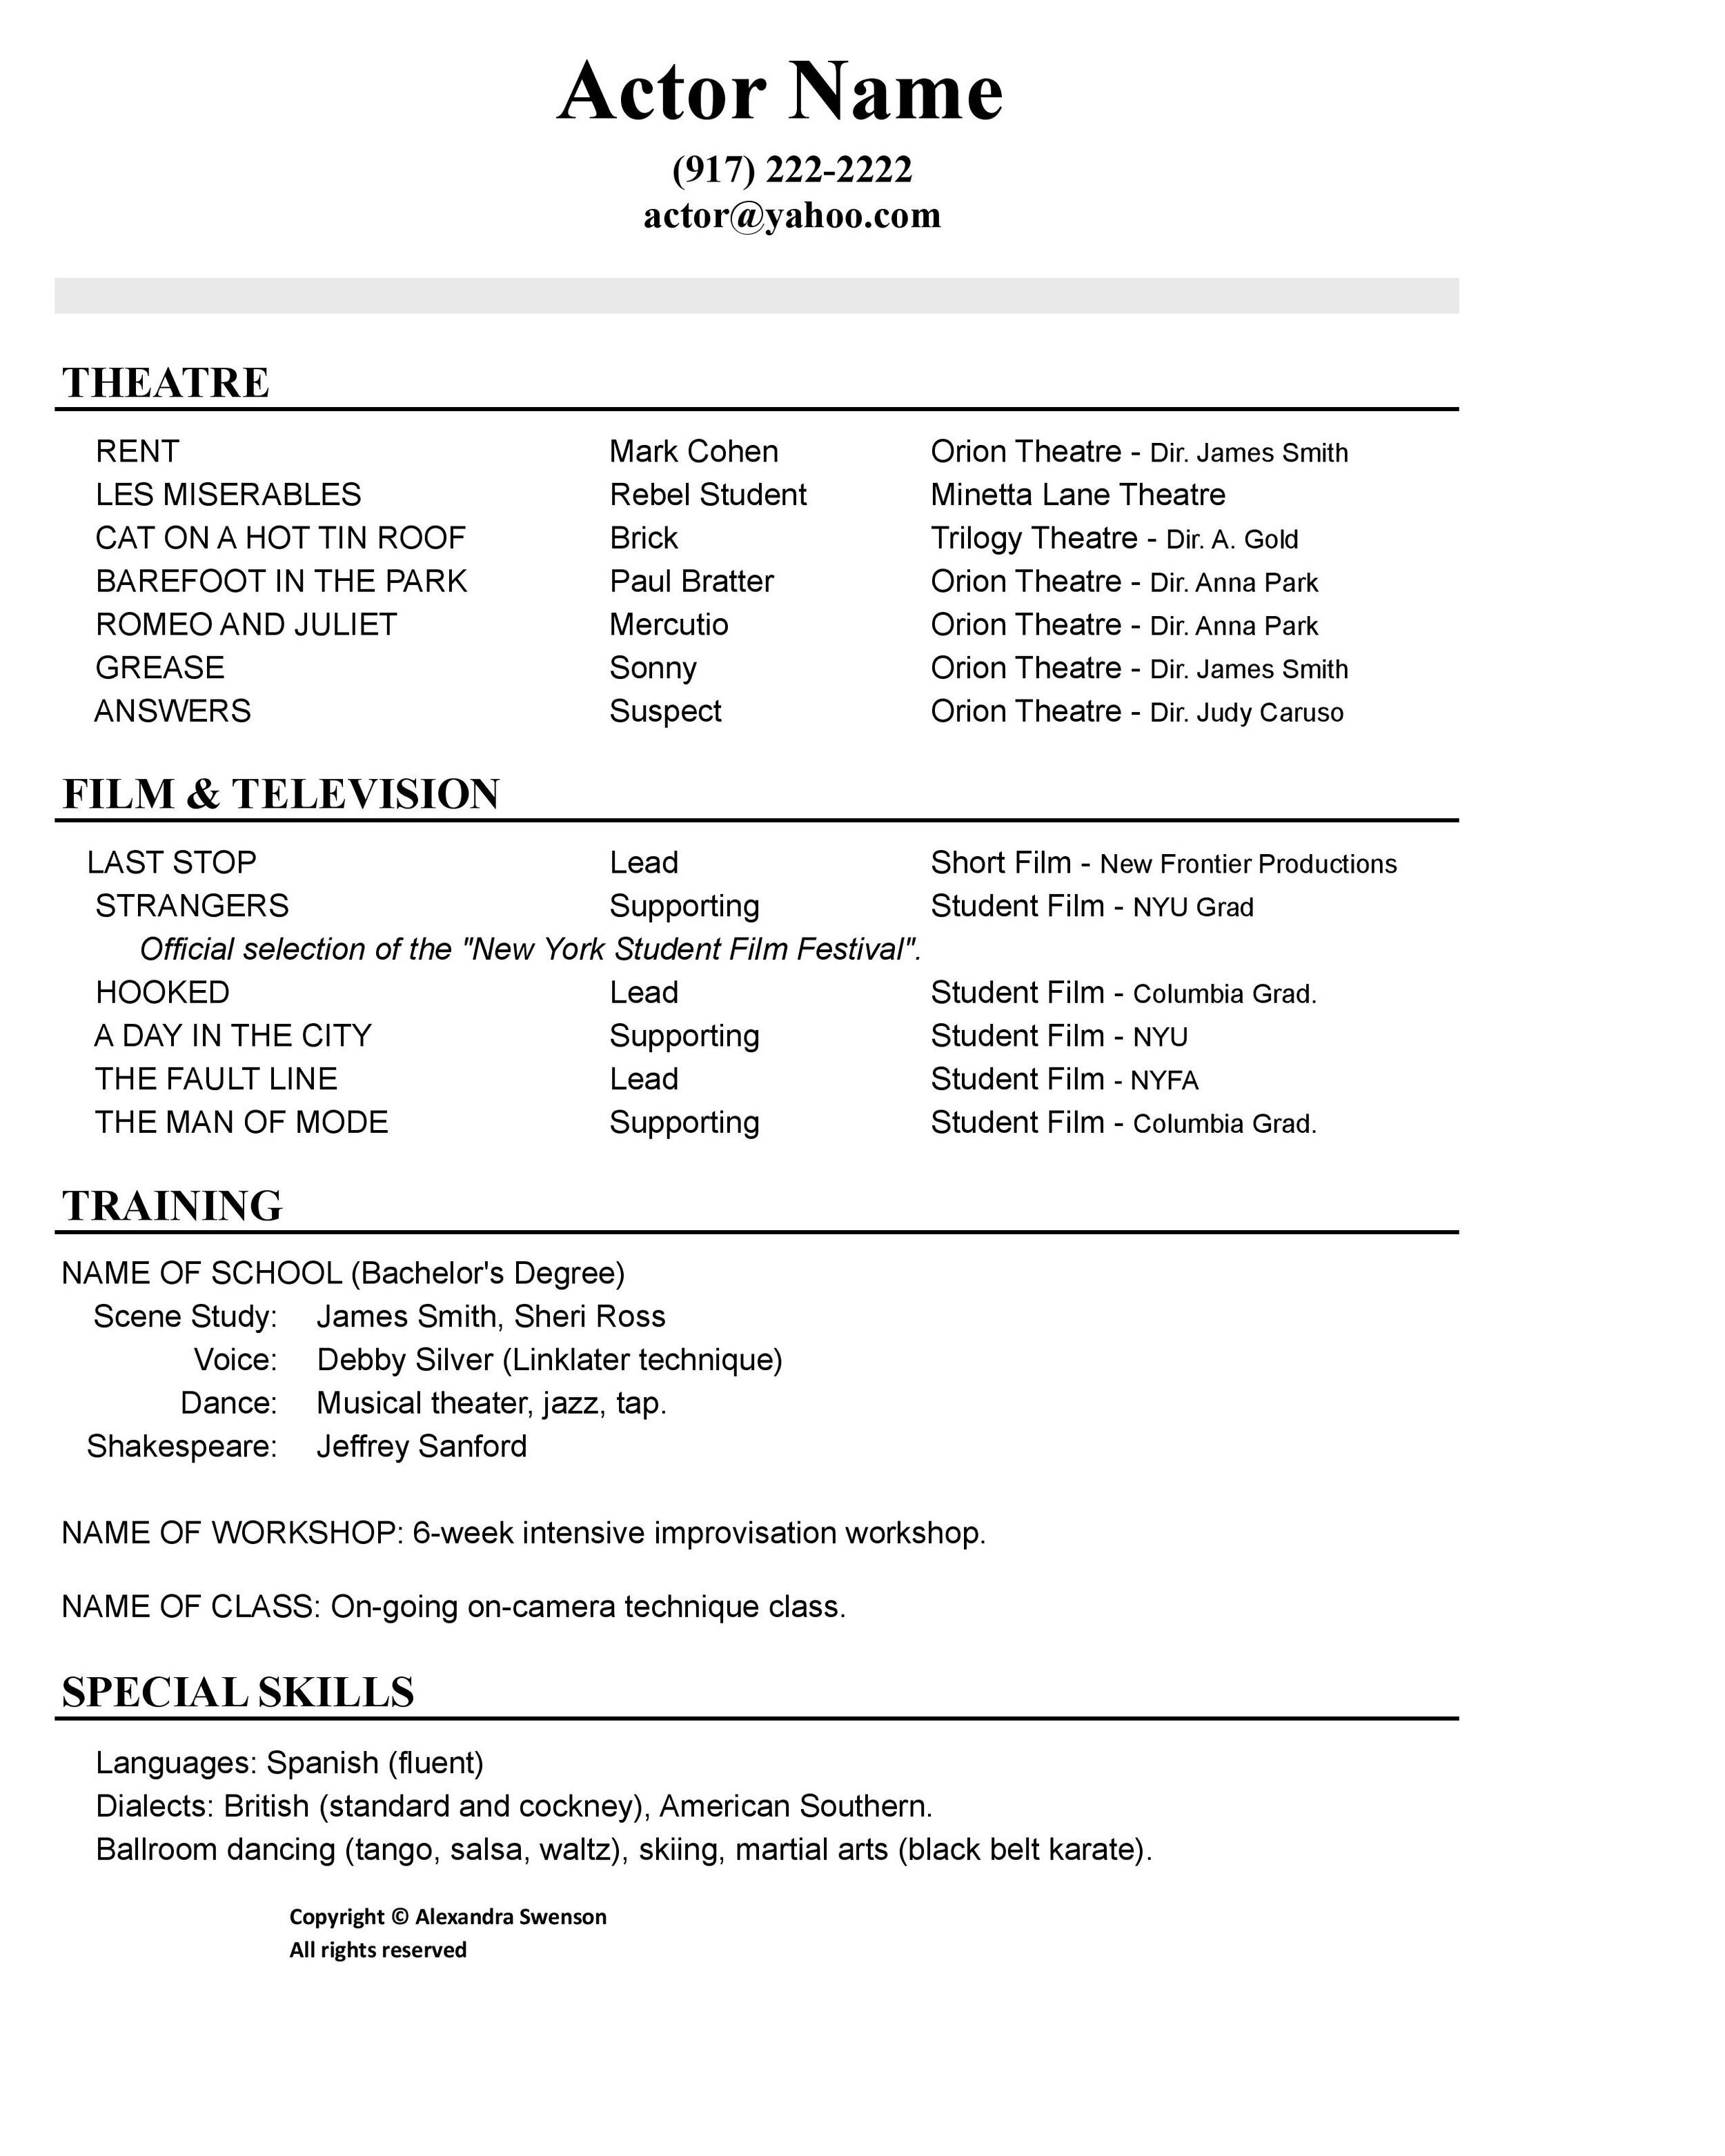 Acting+Resume+No+Experience+Template-page-001.jpg